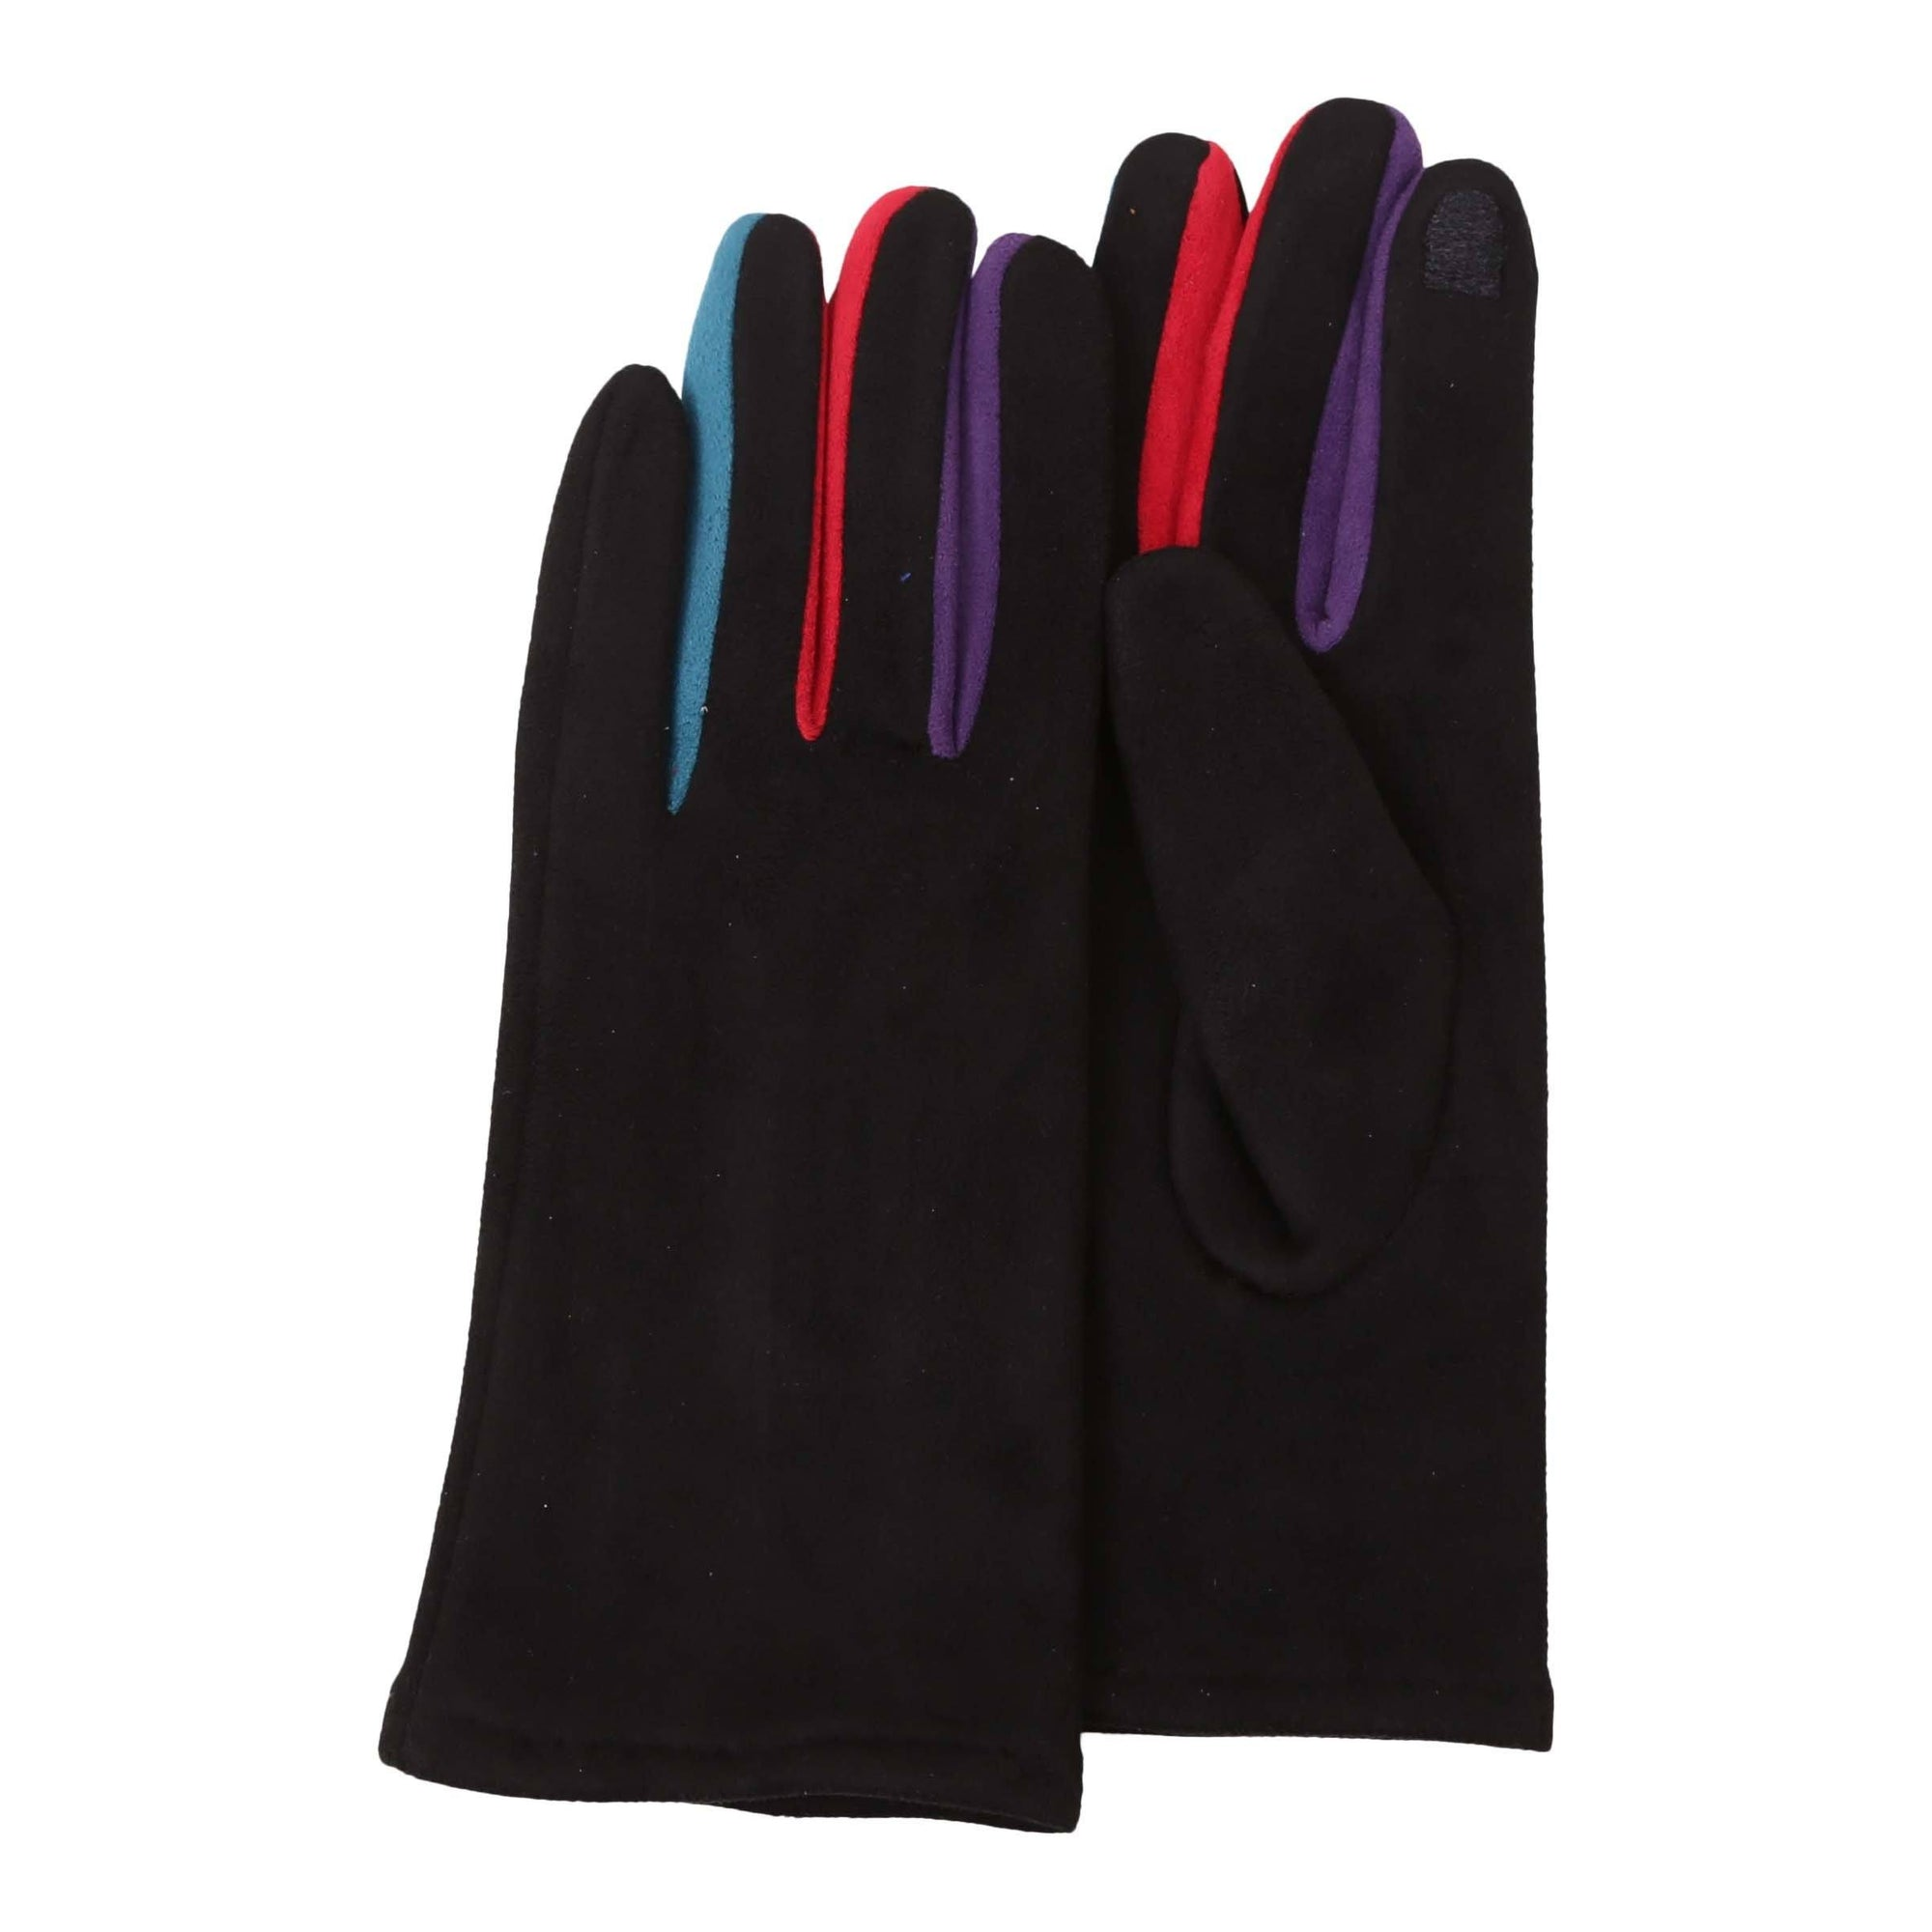 Pair of black texting gloves with colorful gussets between each finger.